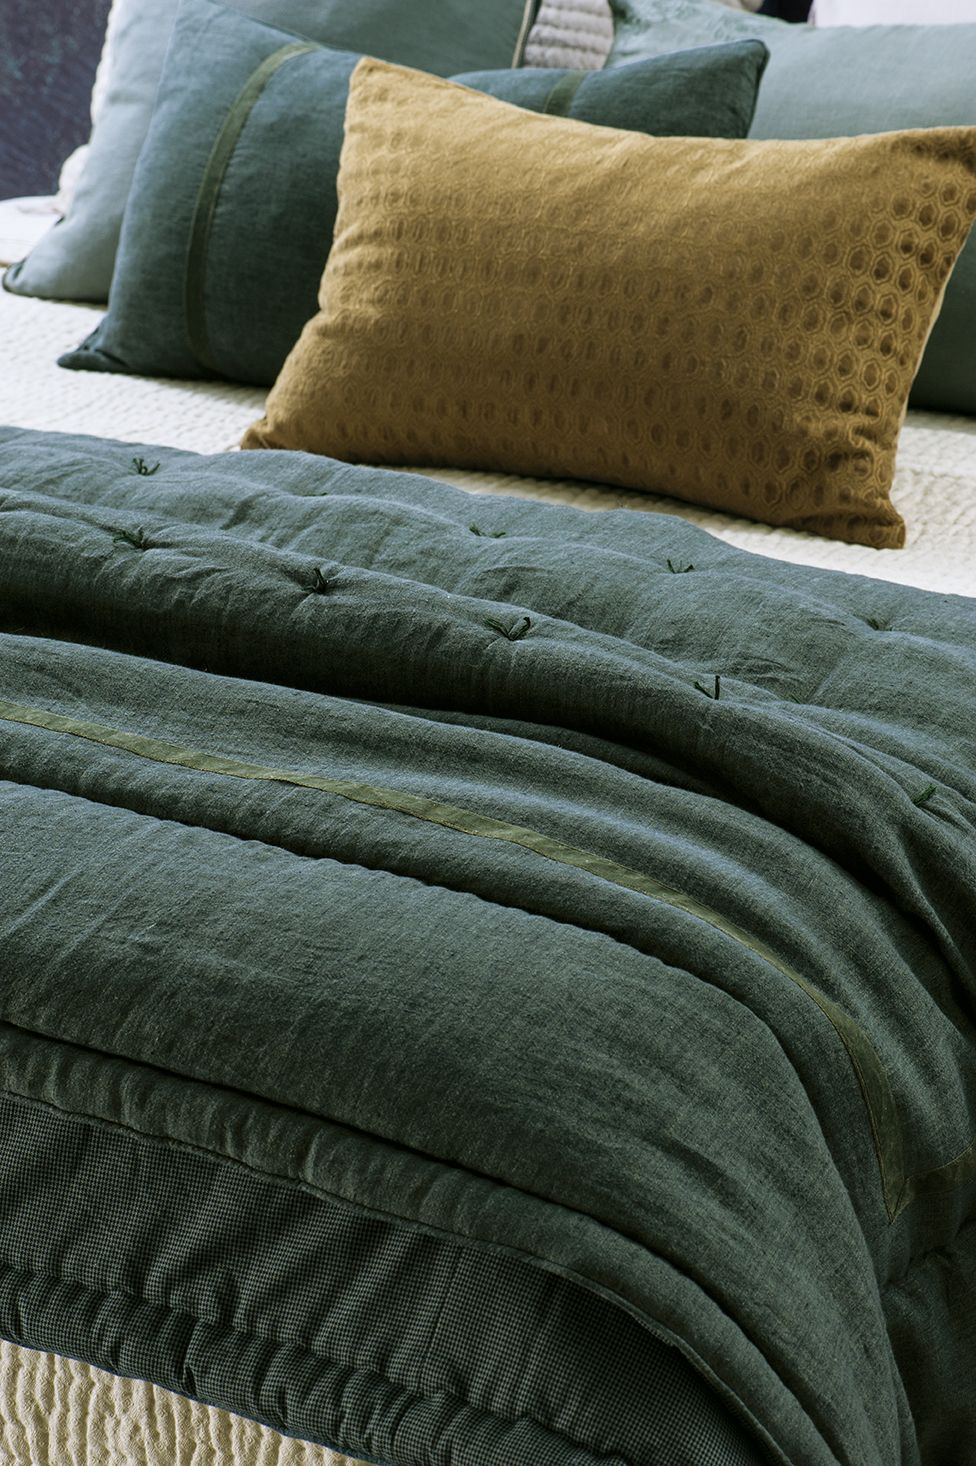 Luchesi Storm Comforter Pictured With Lilypad Olive Cushion And